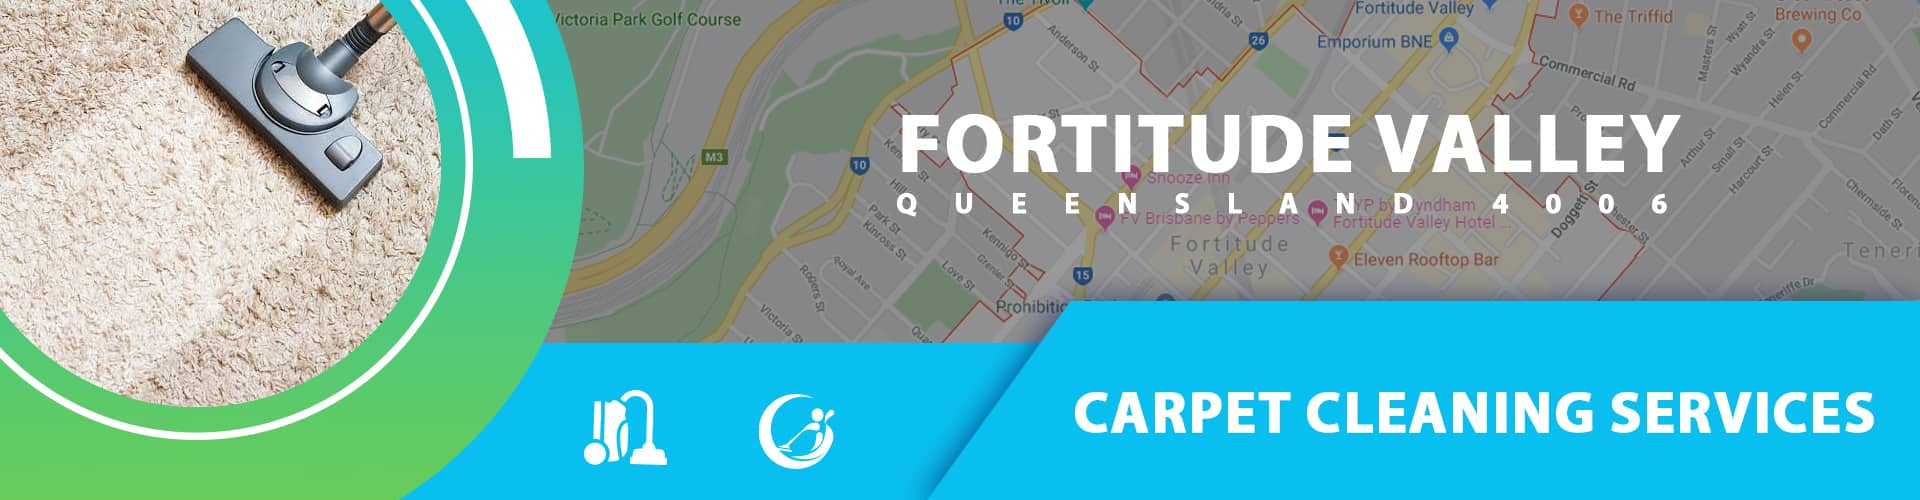 Carpet Cleaning Fortitude Valley Qld